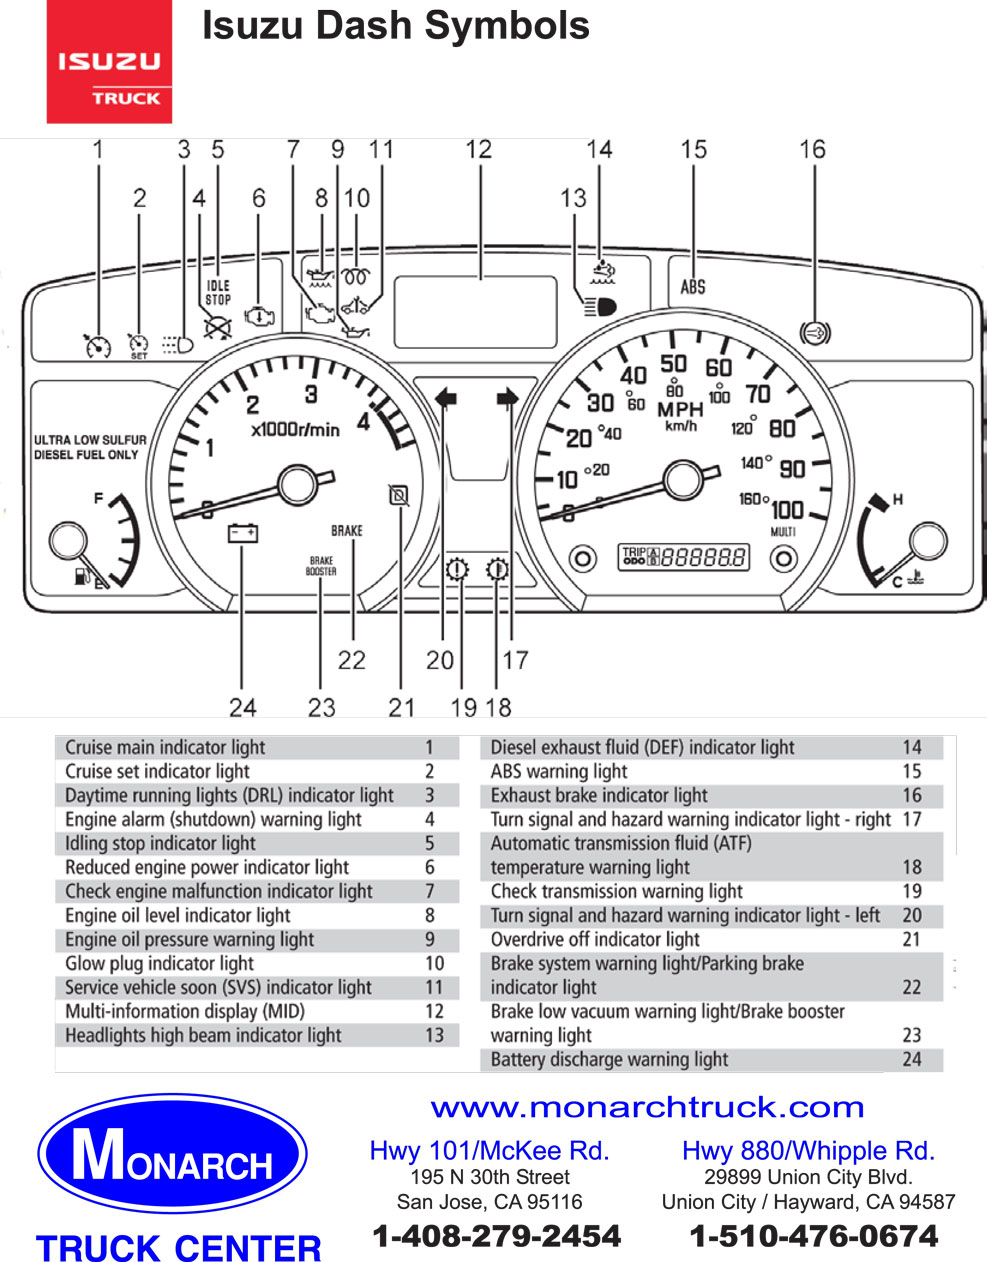 Isuzu 4hl1 Wiring Diagram | Wiring Liry on navistar wiring diagram, winnebago wiring diagram, naza wiring diagram, am general wiring diagram, champion bus wiring diagram, husaberg wiring diagram, manufacturing wiring diagram, cf moto wiring diagram, case wiring diagram, grumman llv wiring diagram, jeep wiring diagram, austin healey wiring diagram, dmax wiring diagram, packard wiring diagram, merkur wiring diagram, lincoln wiring diagram, bomag wiring diagram, geo wiring diagram, chevrolet wiring diagram, meyers manx wiring diagram,